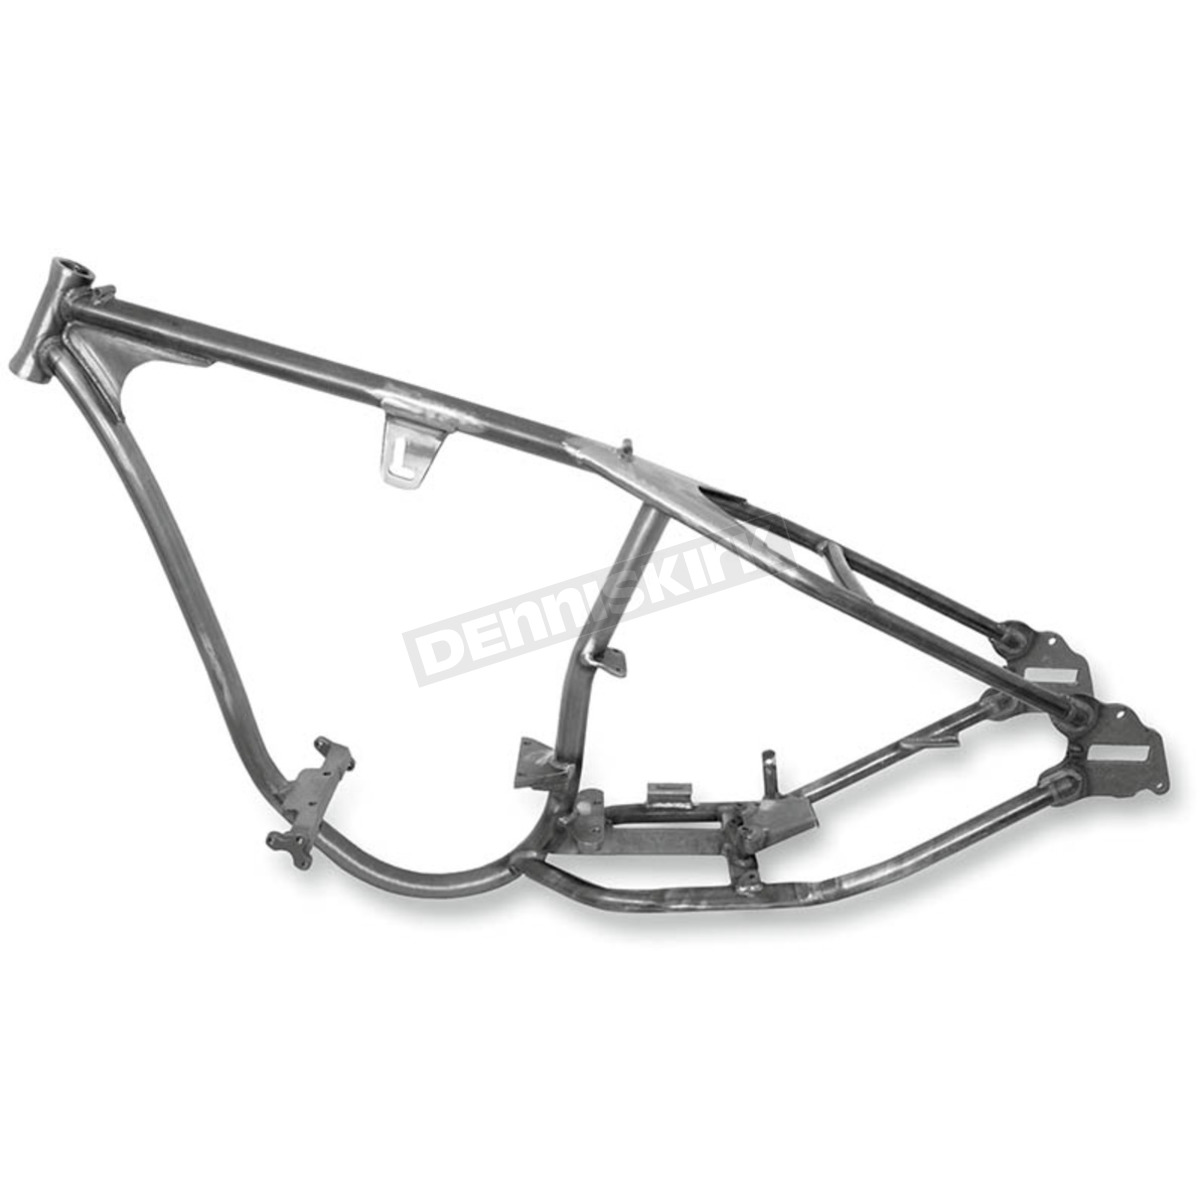 Paughco Single Loop Rigid Fork Frame - SLP139 Harley-Davidson ...